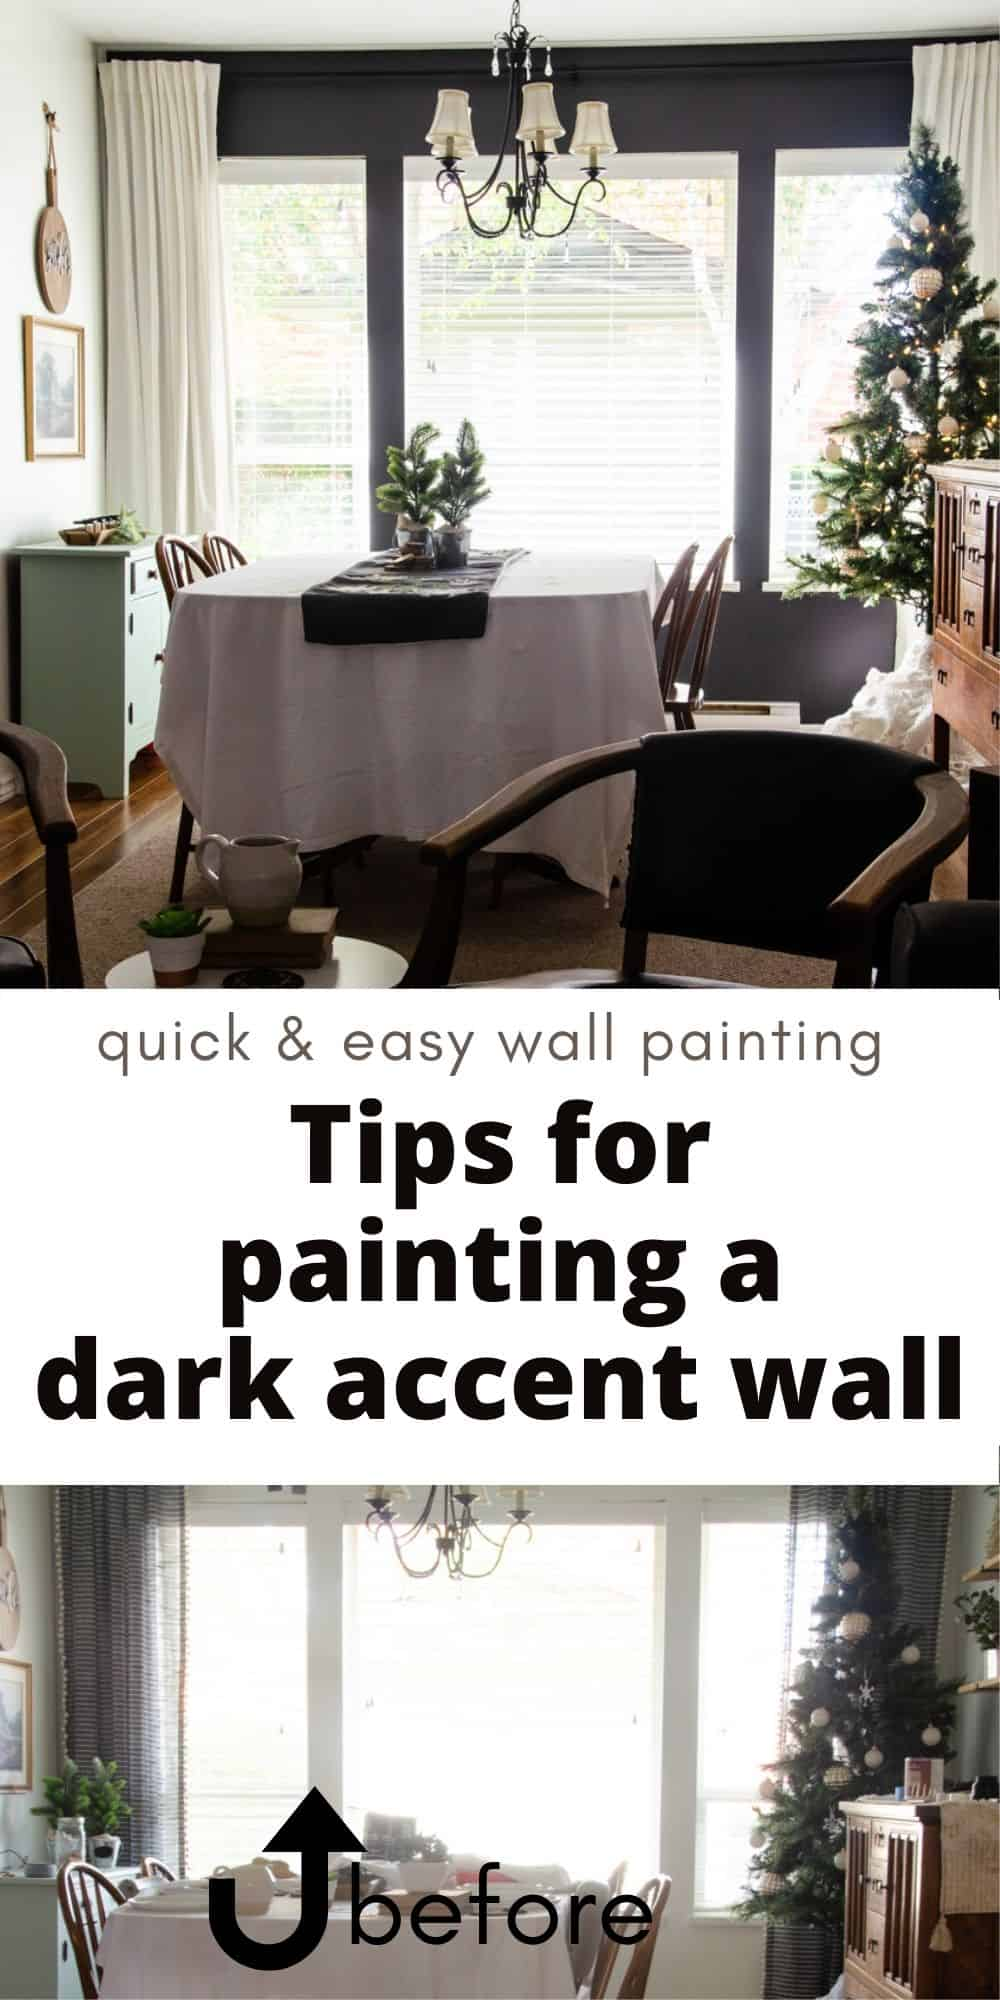 Dark Painted Accent Wall in Dining Room - a before & after collage